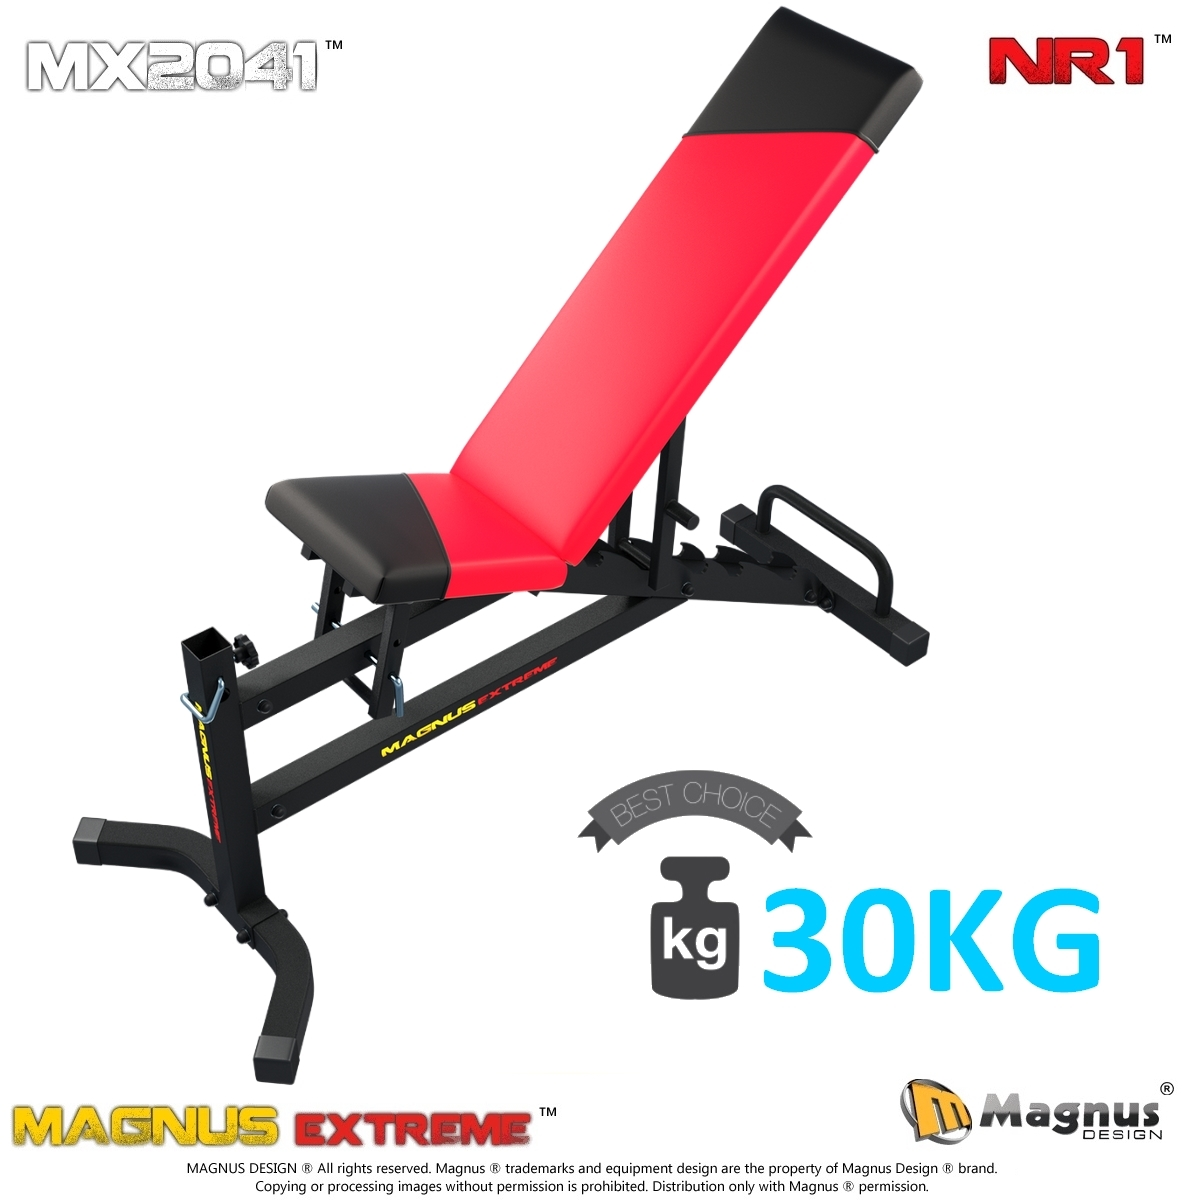 Safe exercises with the Magnus exercise machine